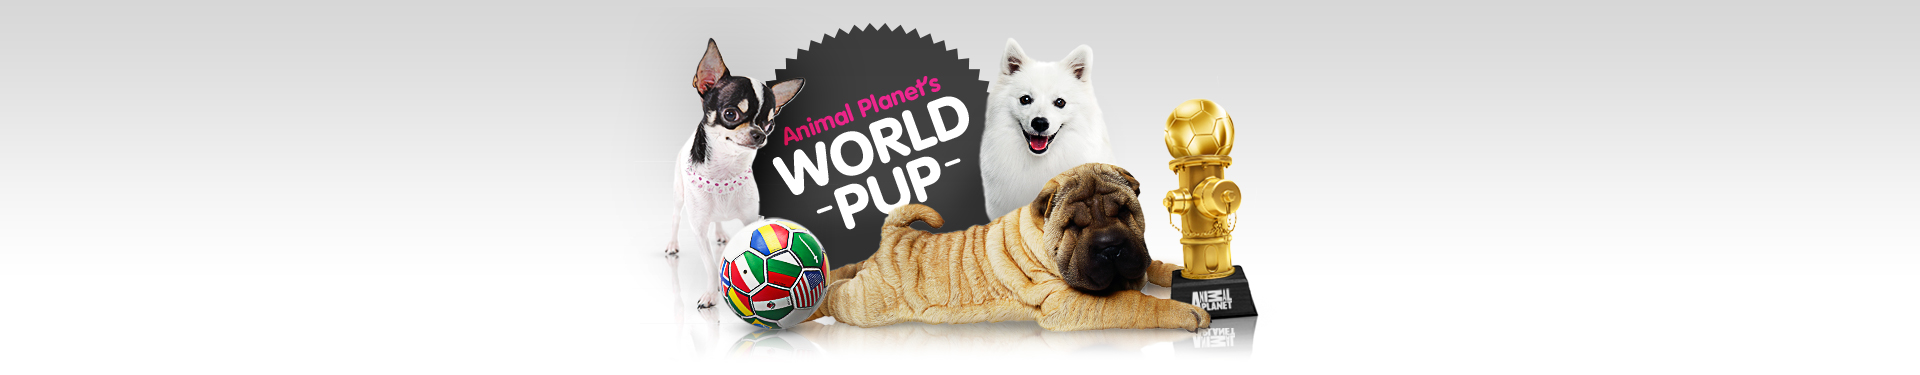 WORLD_PUP_1920x375_PORTAL.jpg